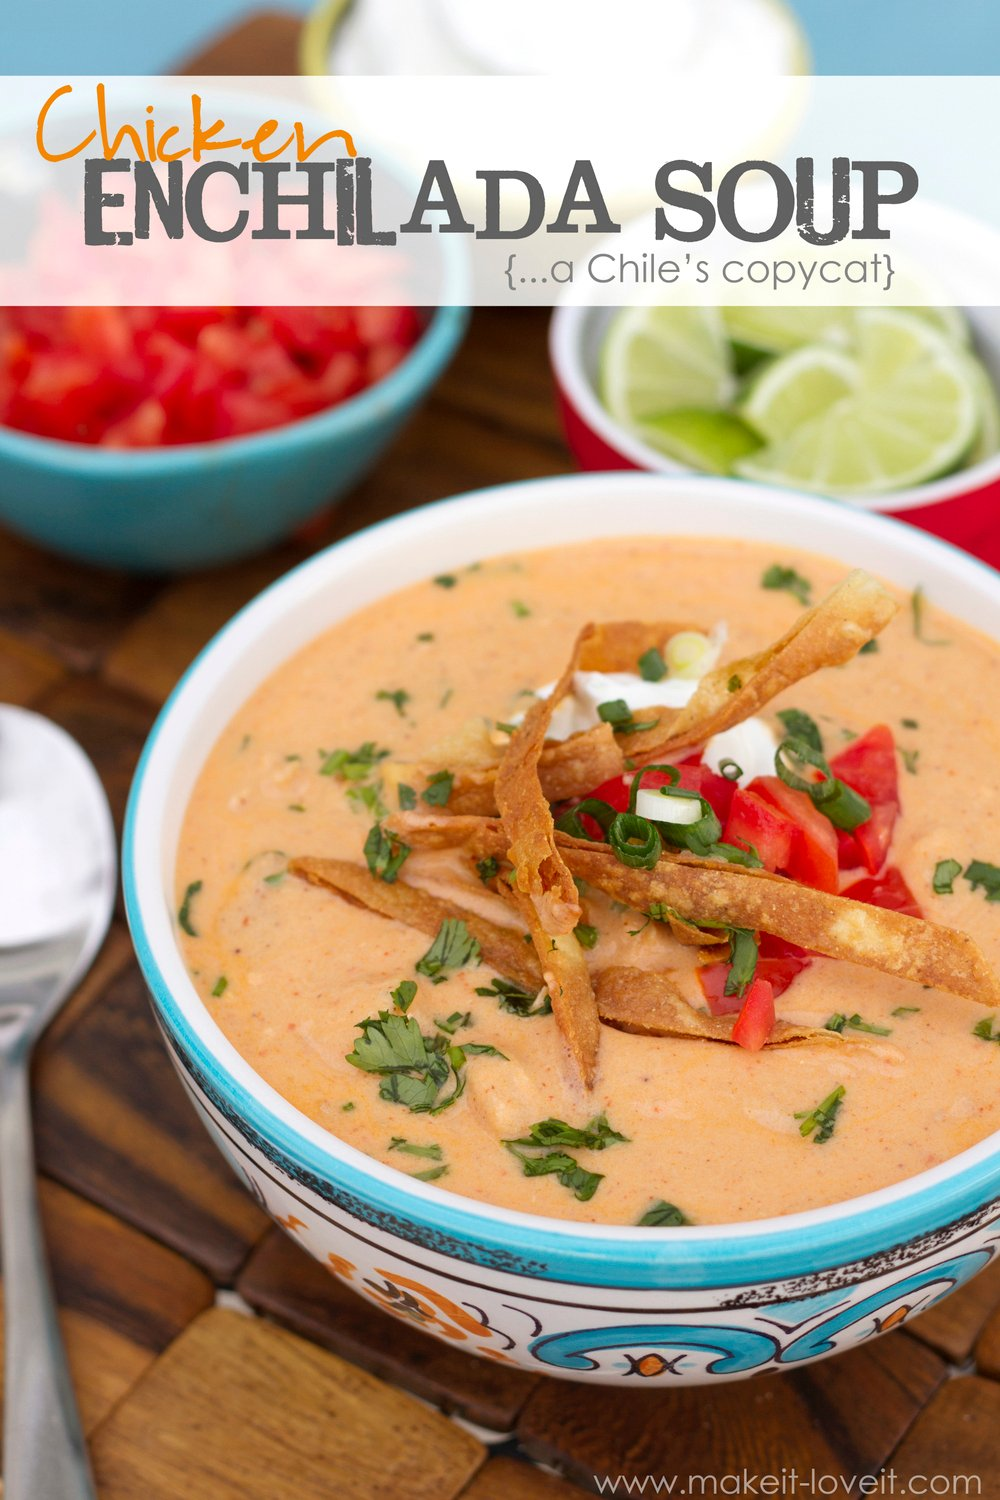 Recipe: chicken enchilada soup (a chili's copycat)